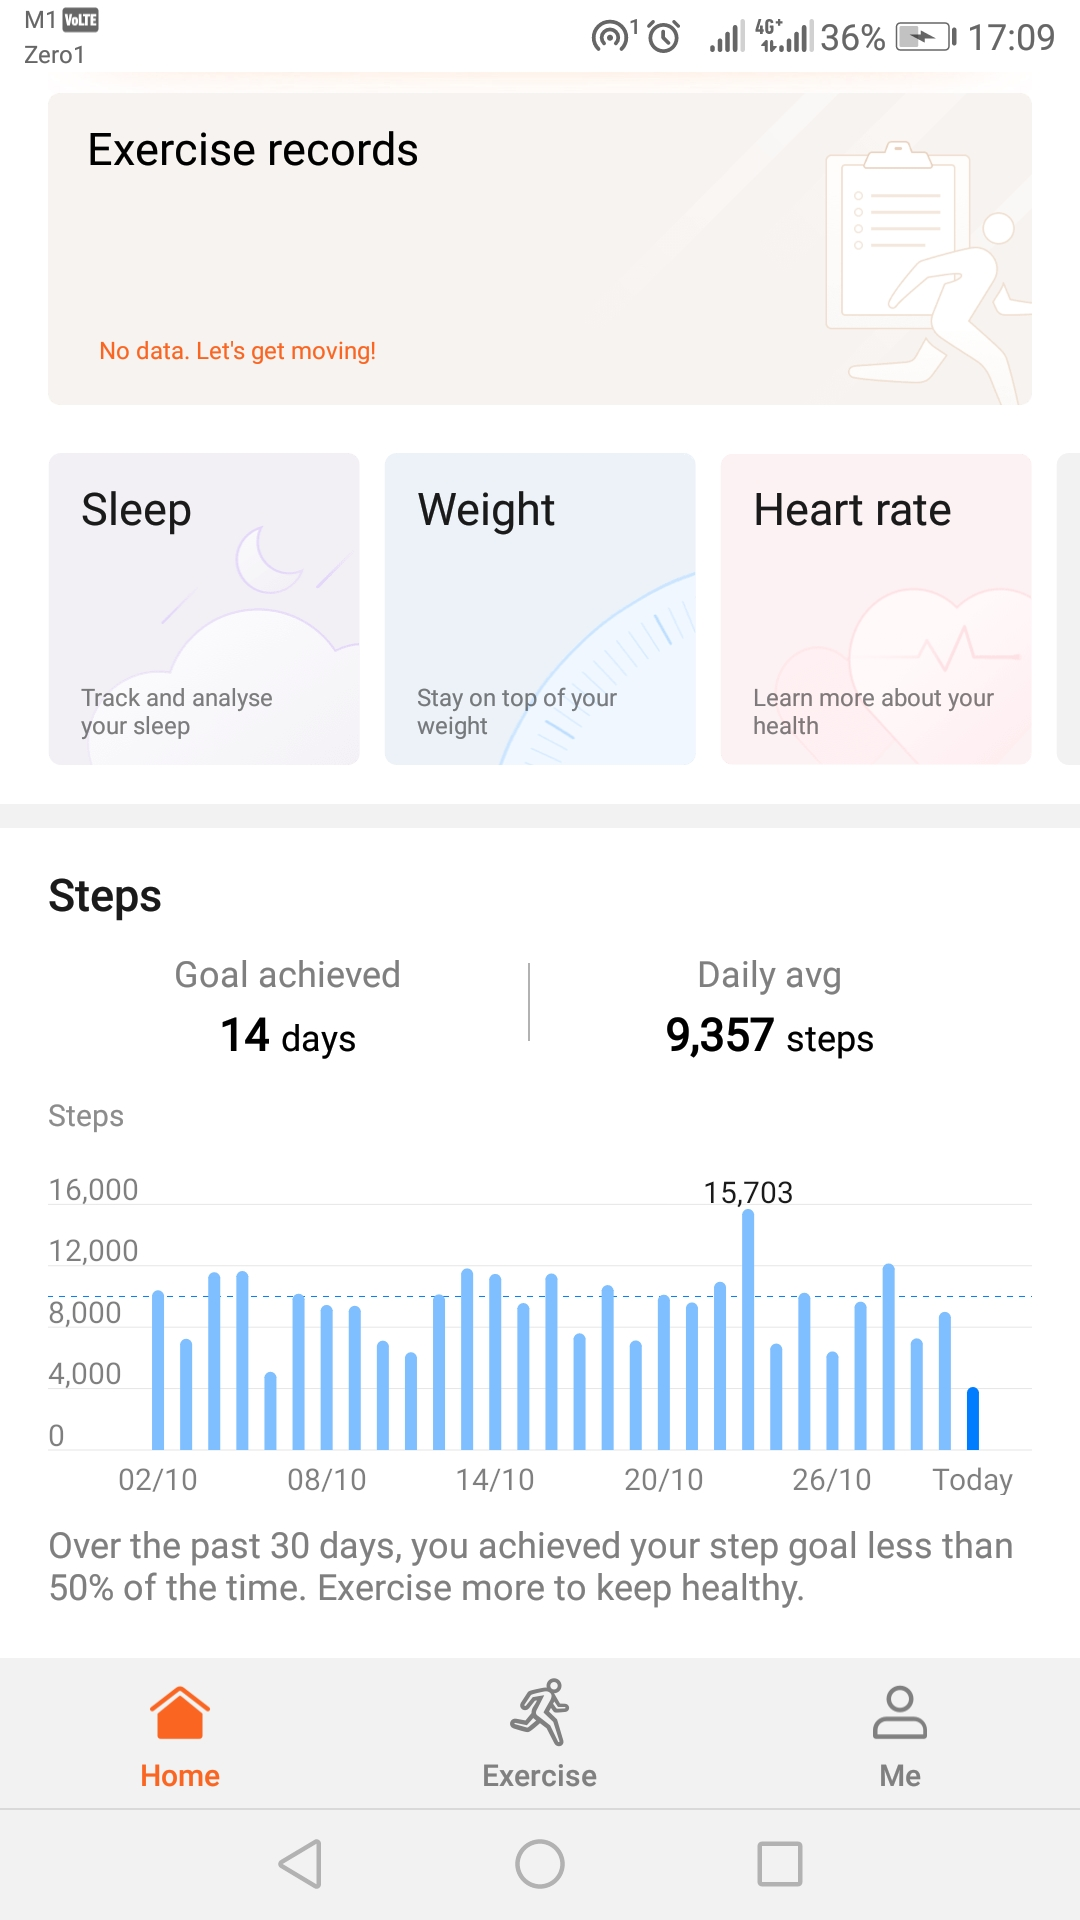 Teo En Ming's Exercise Record for Oct 2018